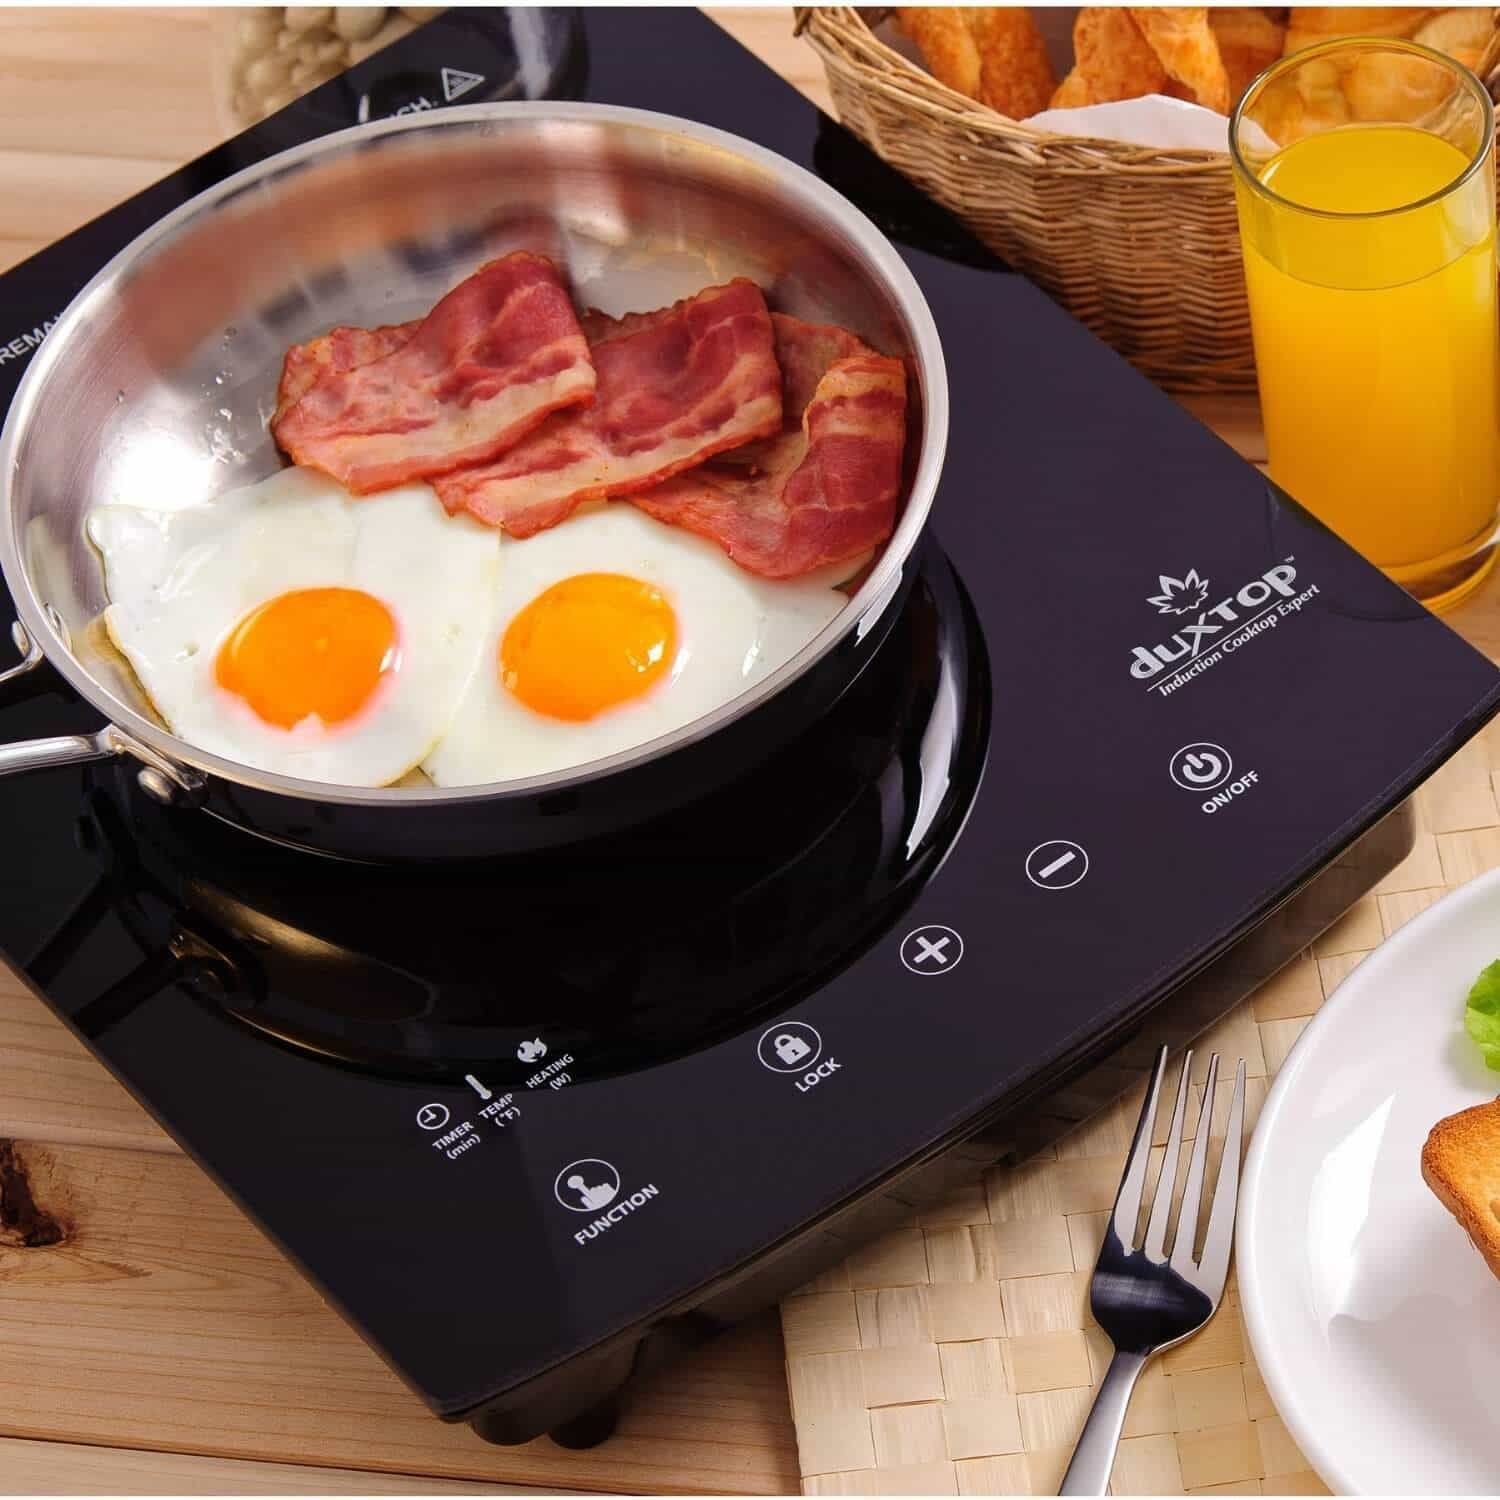 Duxtop 8300ST Portable Induction Cooktop Review  Giveaway